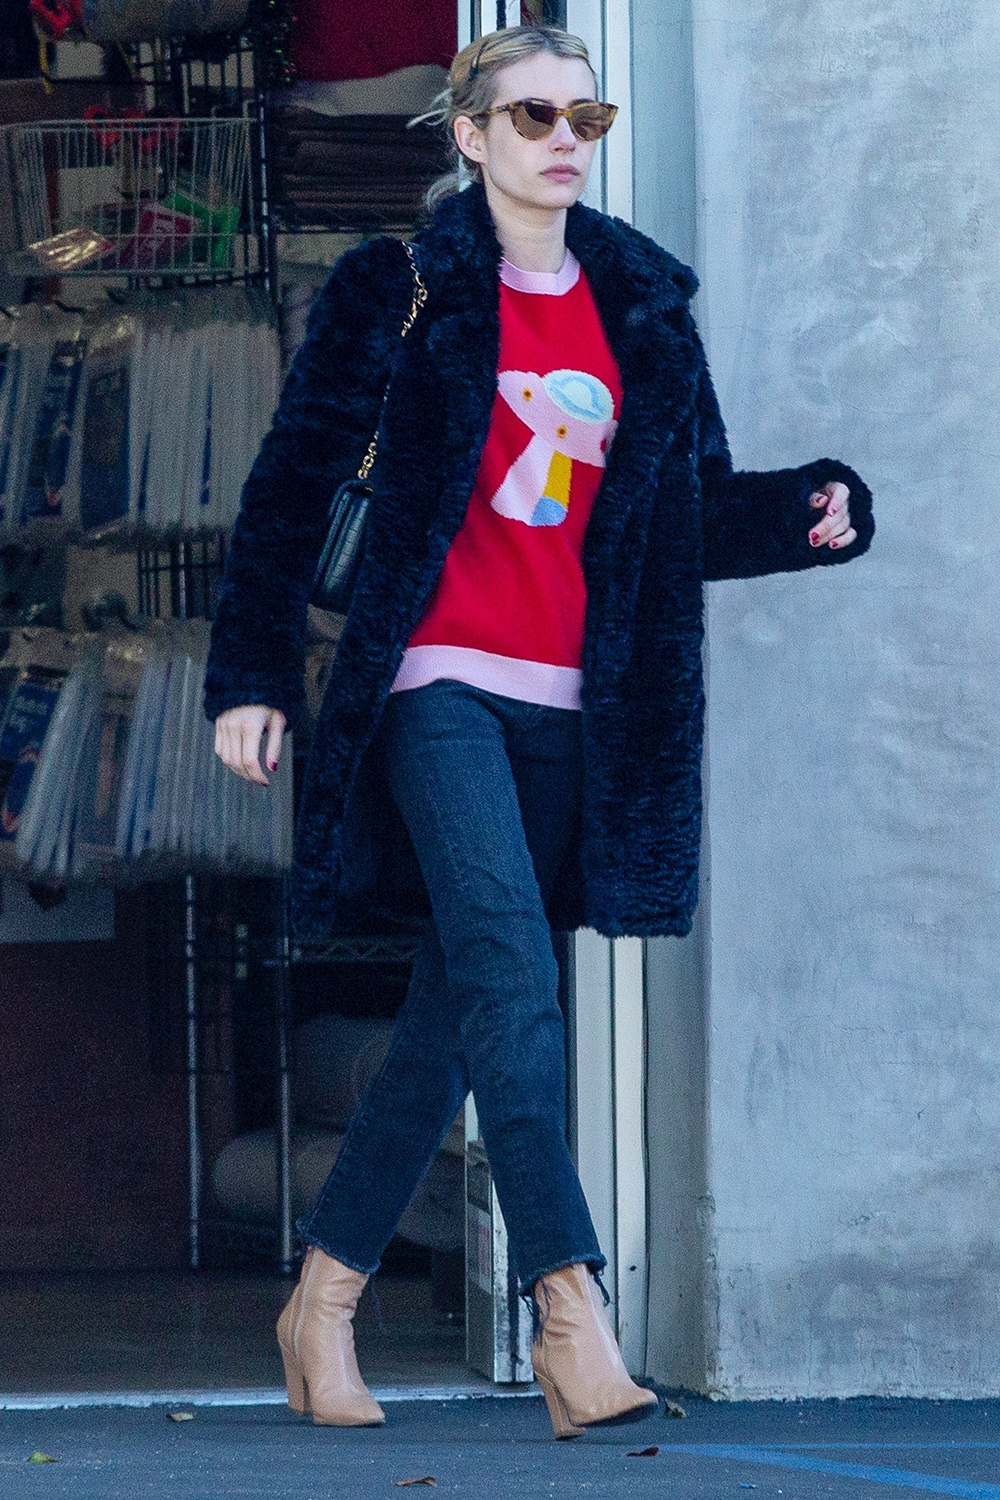 Emma Roberts stops at a store to ship some gifts on Christmas Eve while out running errands in Los Feliz.